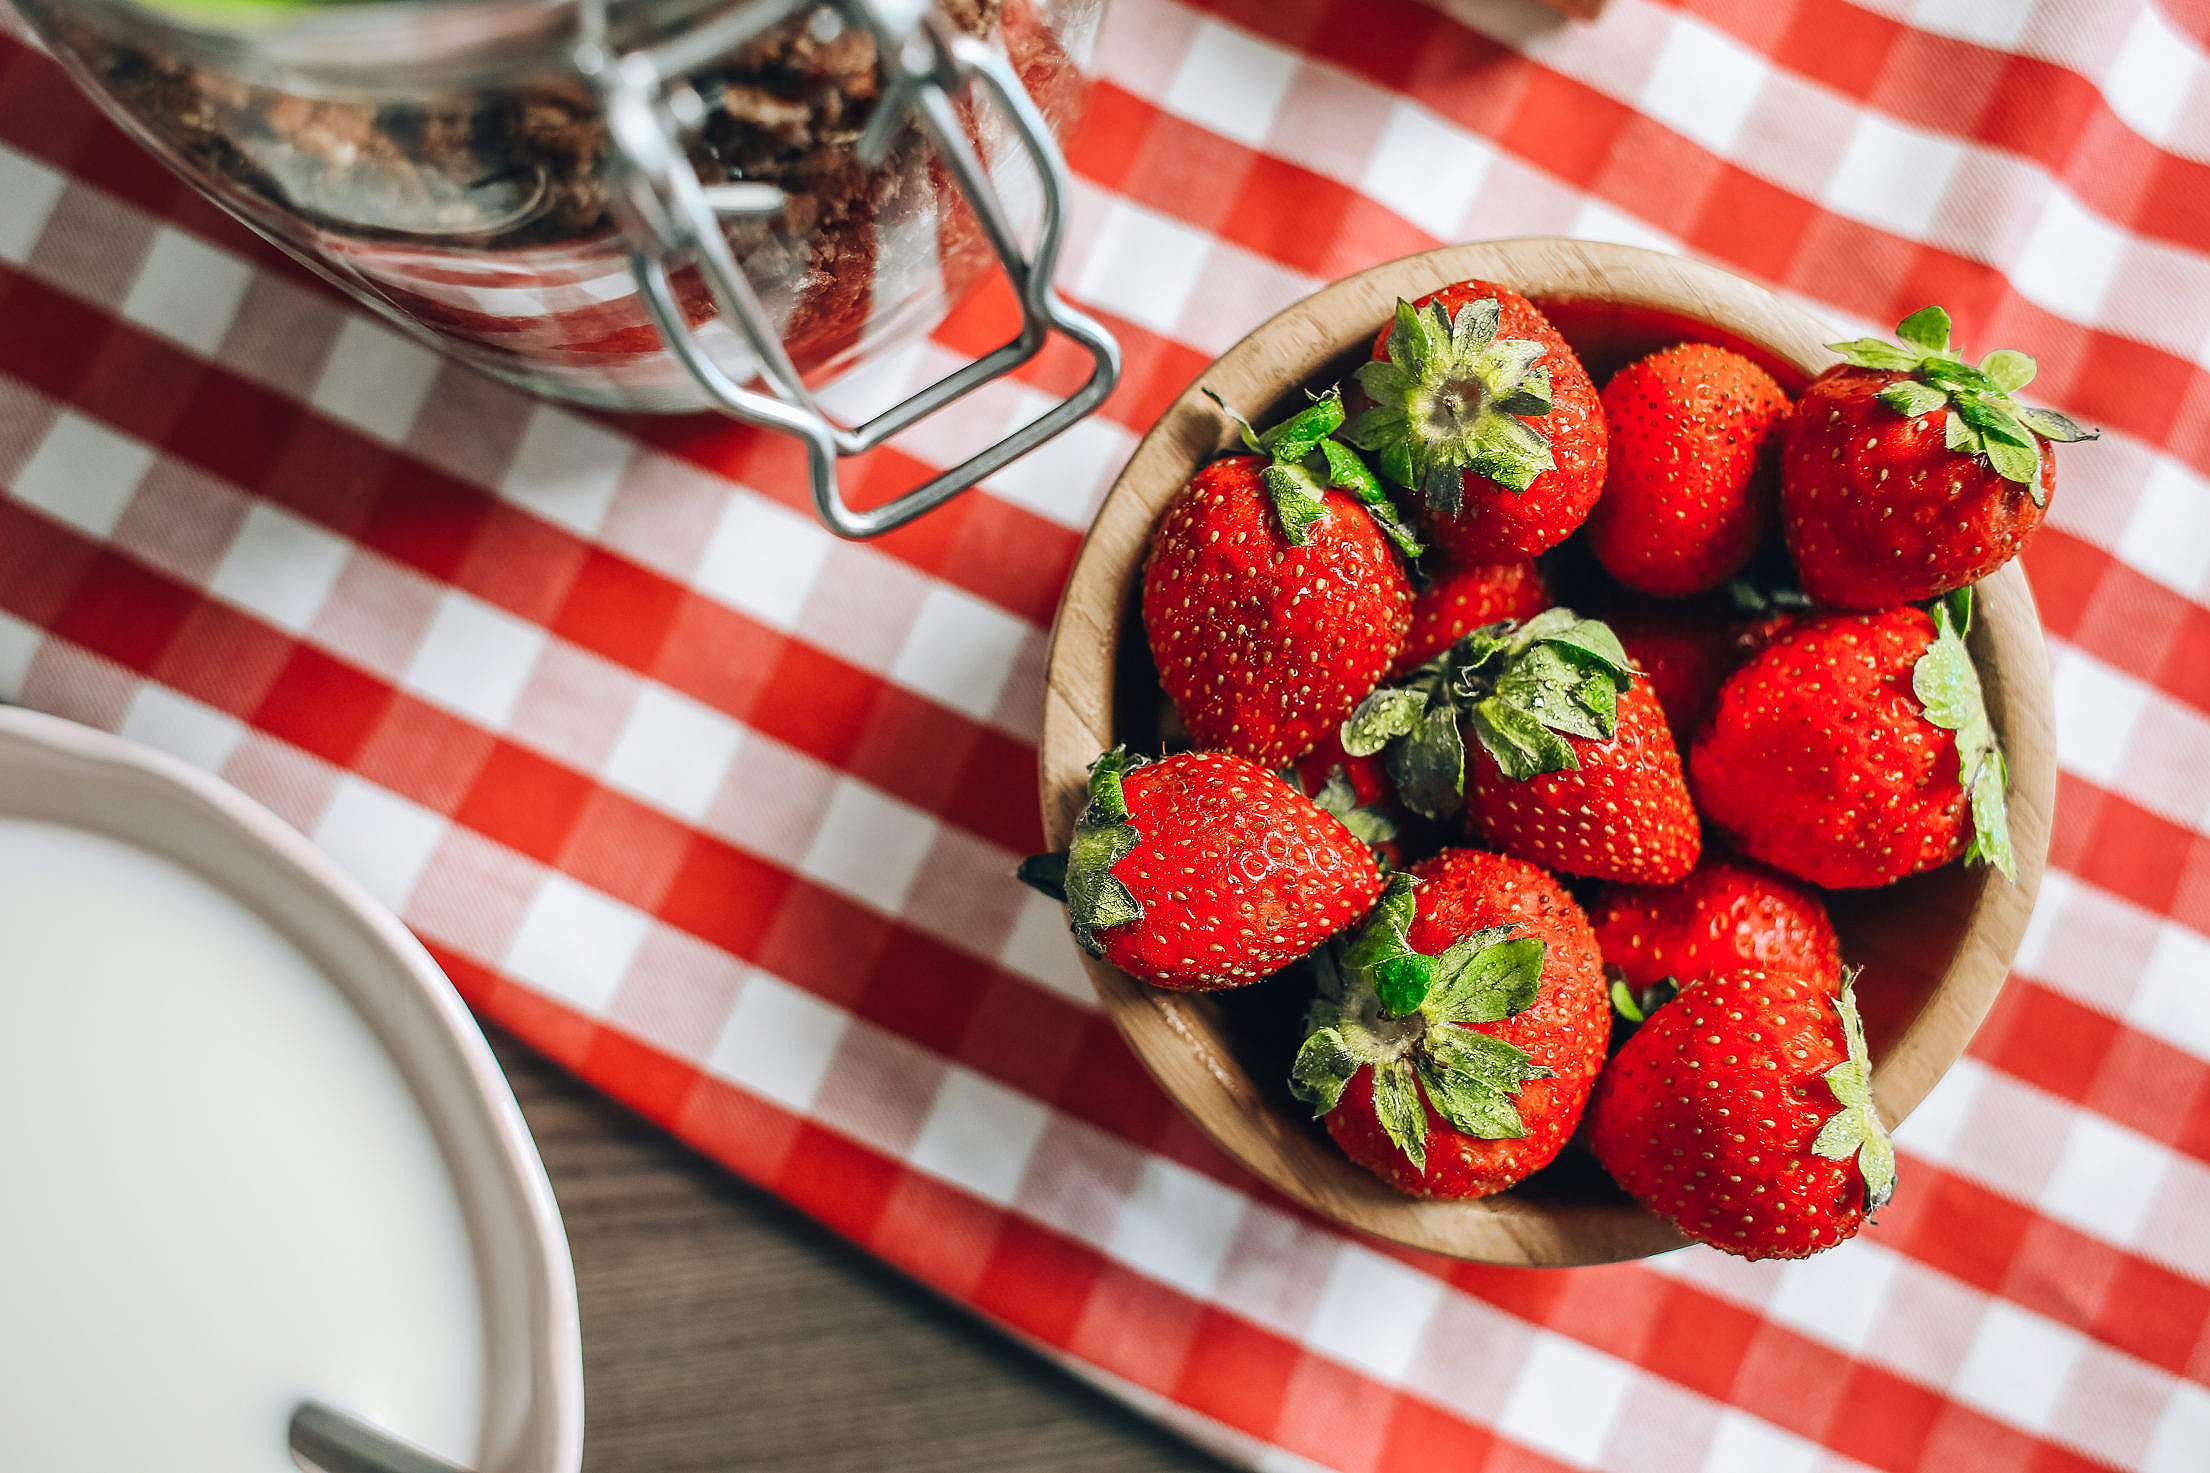 Fresh Strawberries in a Wooden Bowl Free Stock Photo